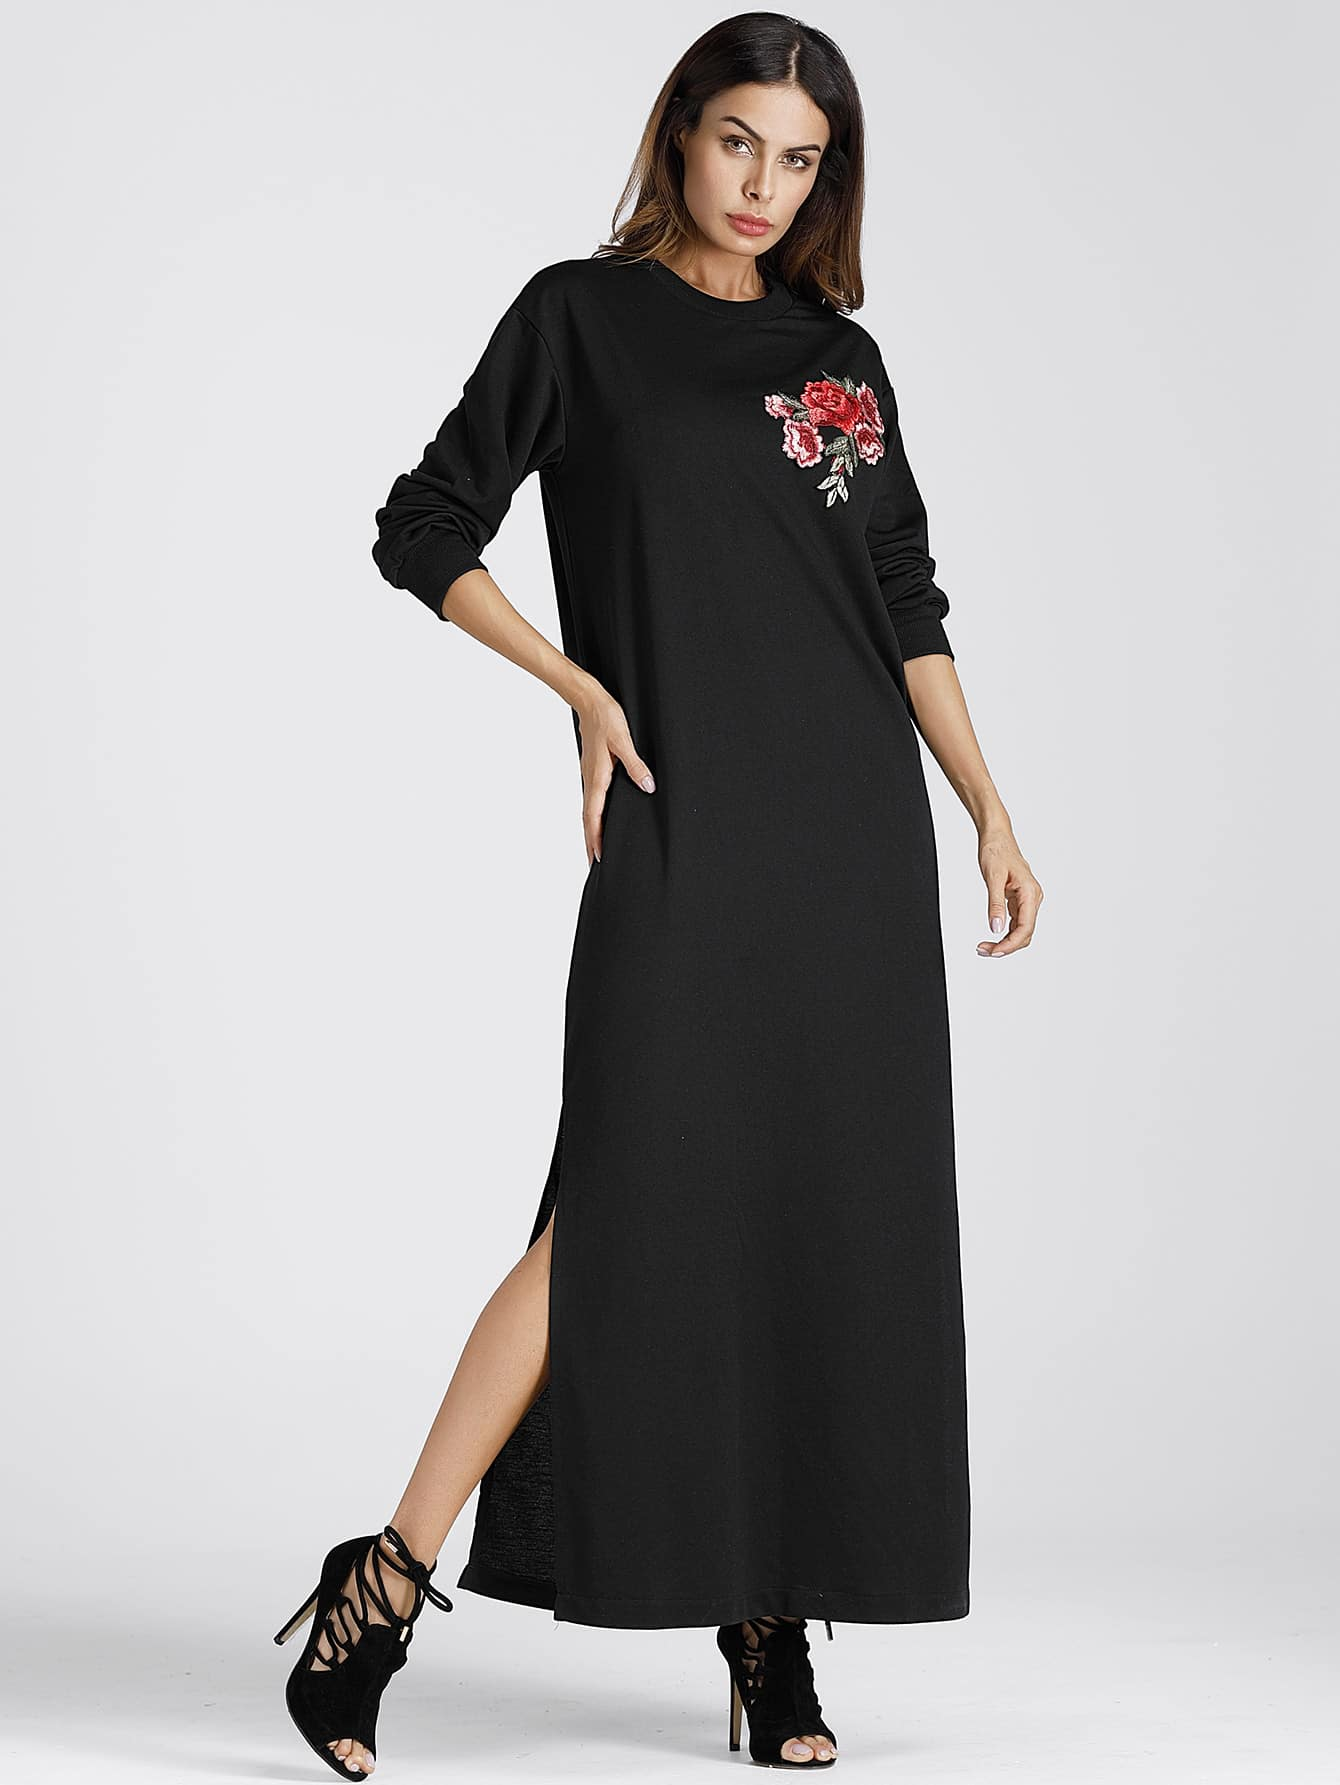 Split Side Applique Longline Hoodie Dress dress170918134